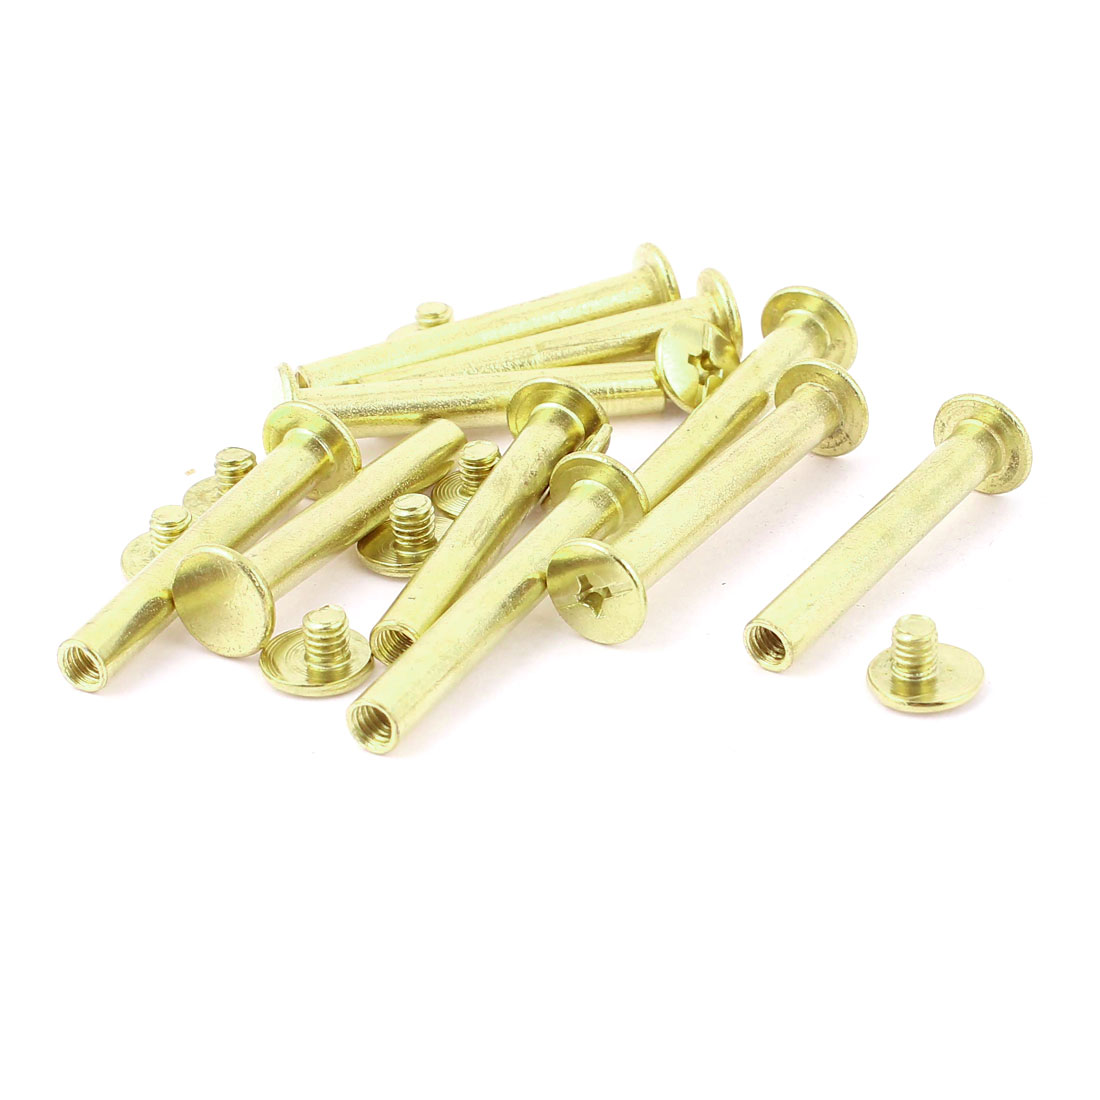 10pcs 5mmx35mm Brass Plated Binding Chicago Screw Post for Album Scrapbook